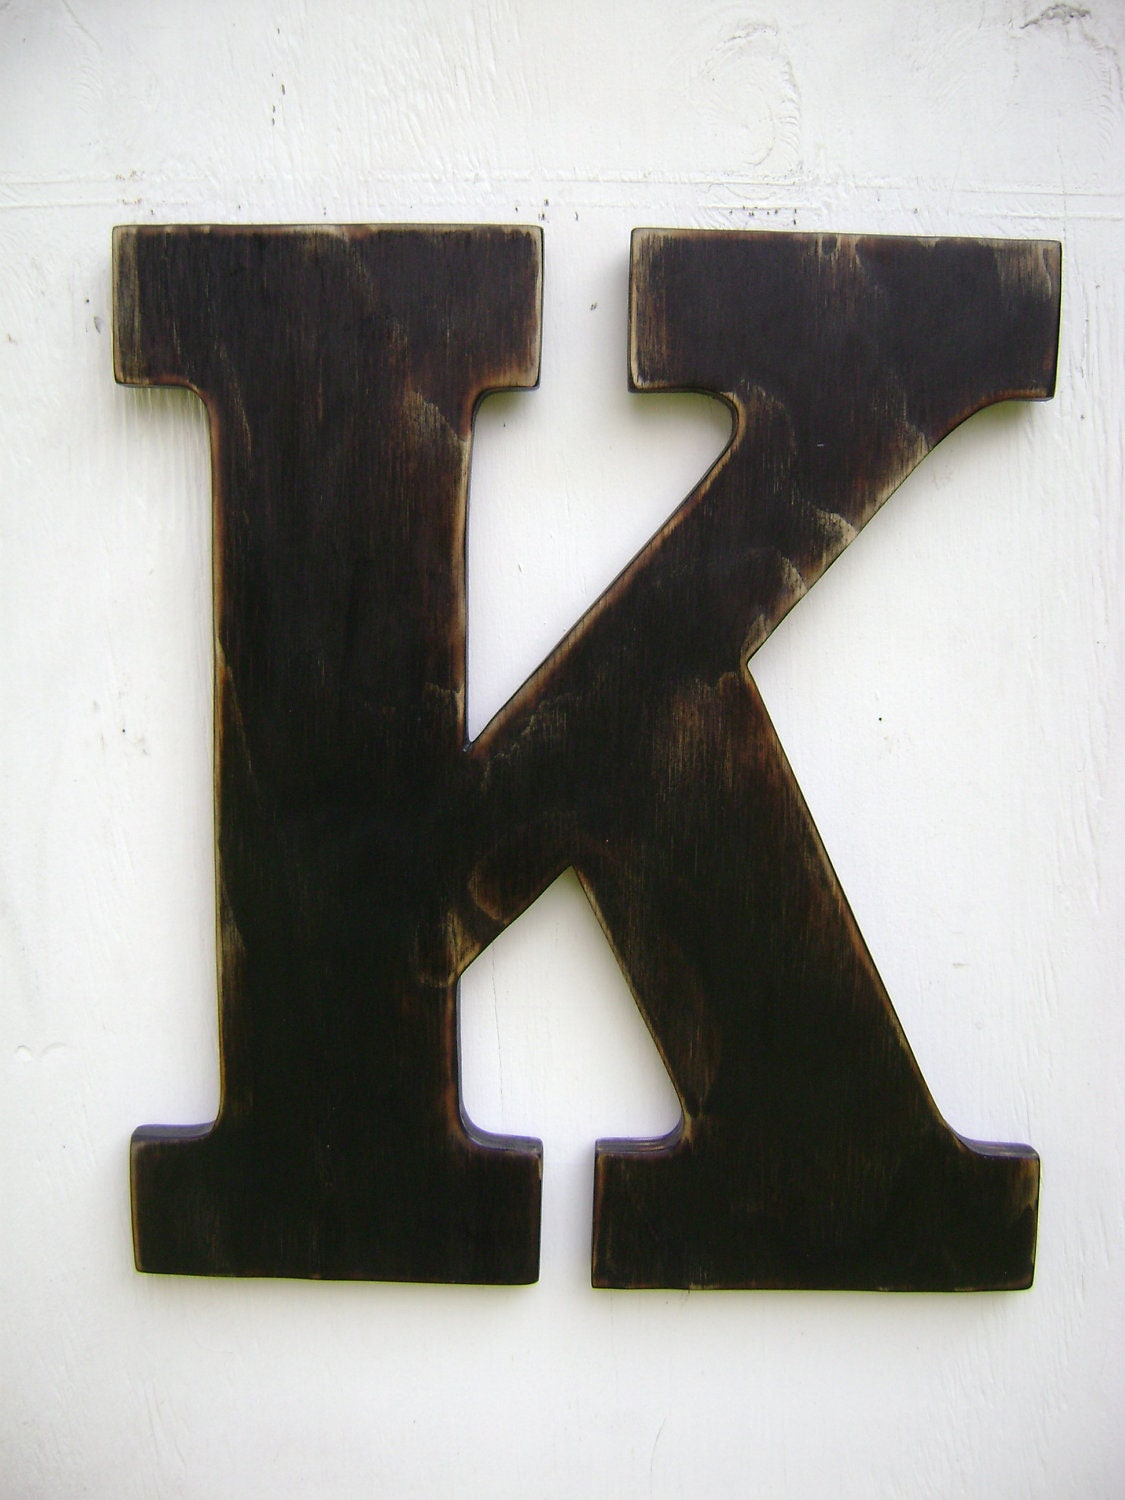 Large wood letter k shabby chic wall hanging decor 18 for Letter k decoration